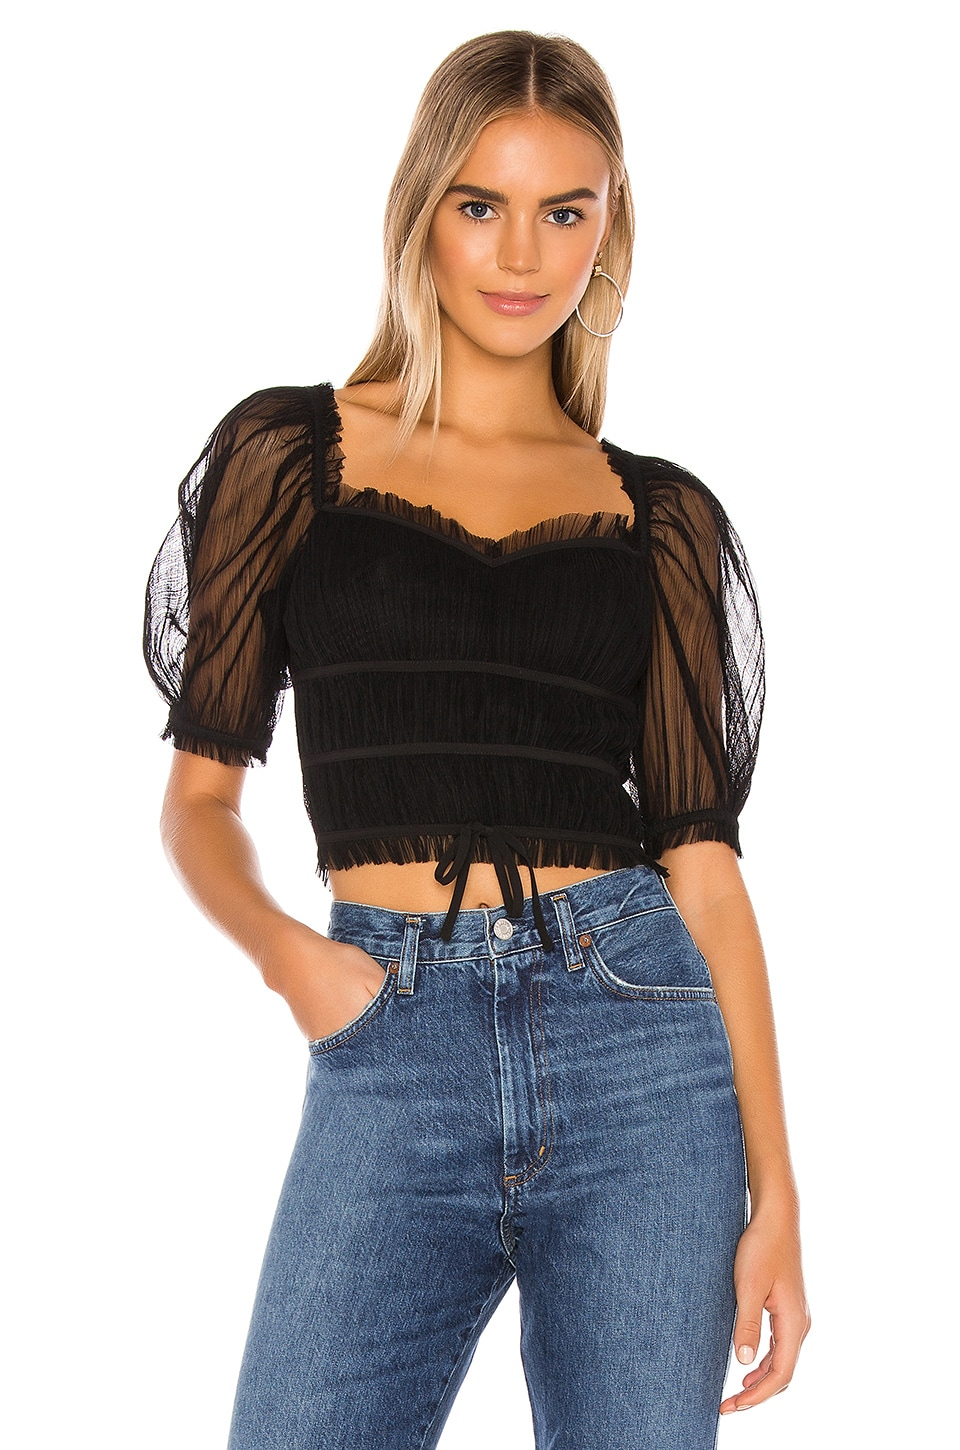 MAJORELLE Love Like This Top in Black